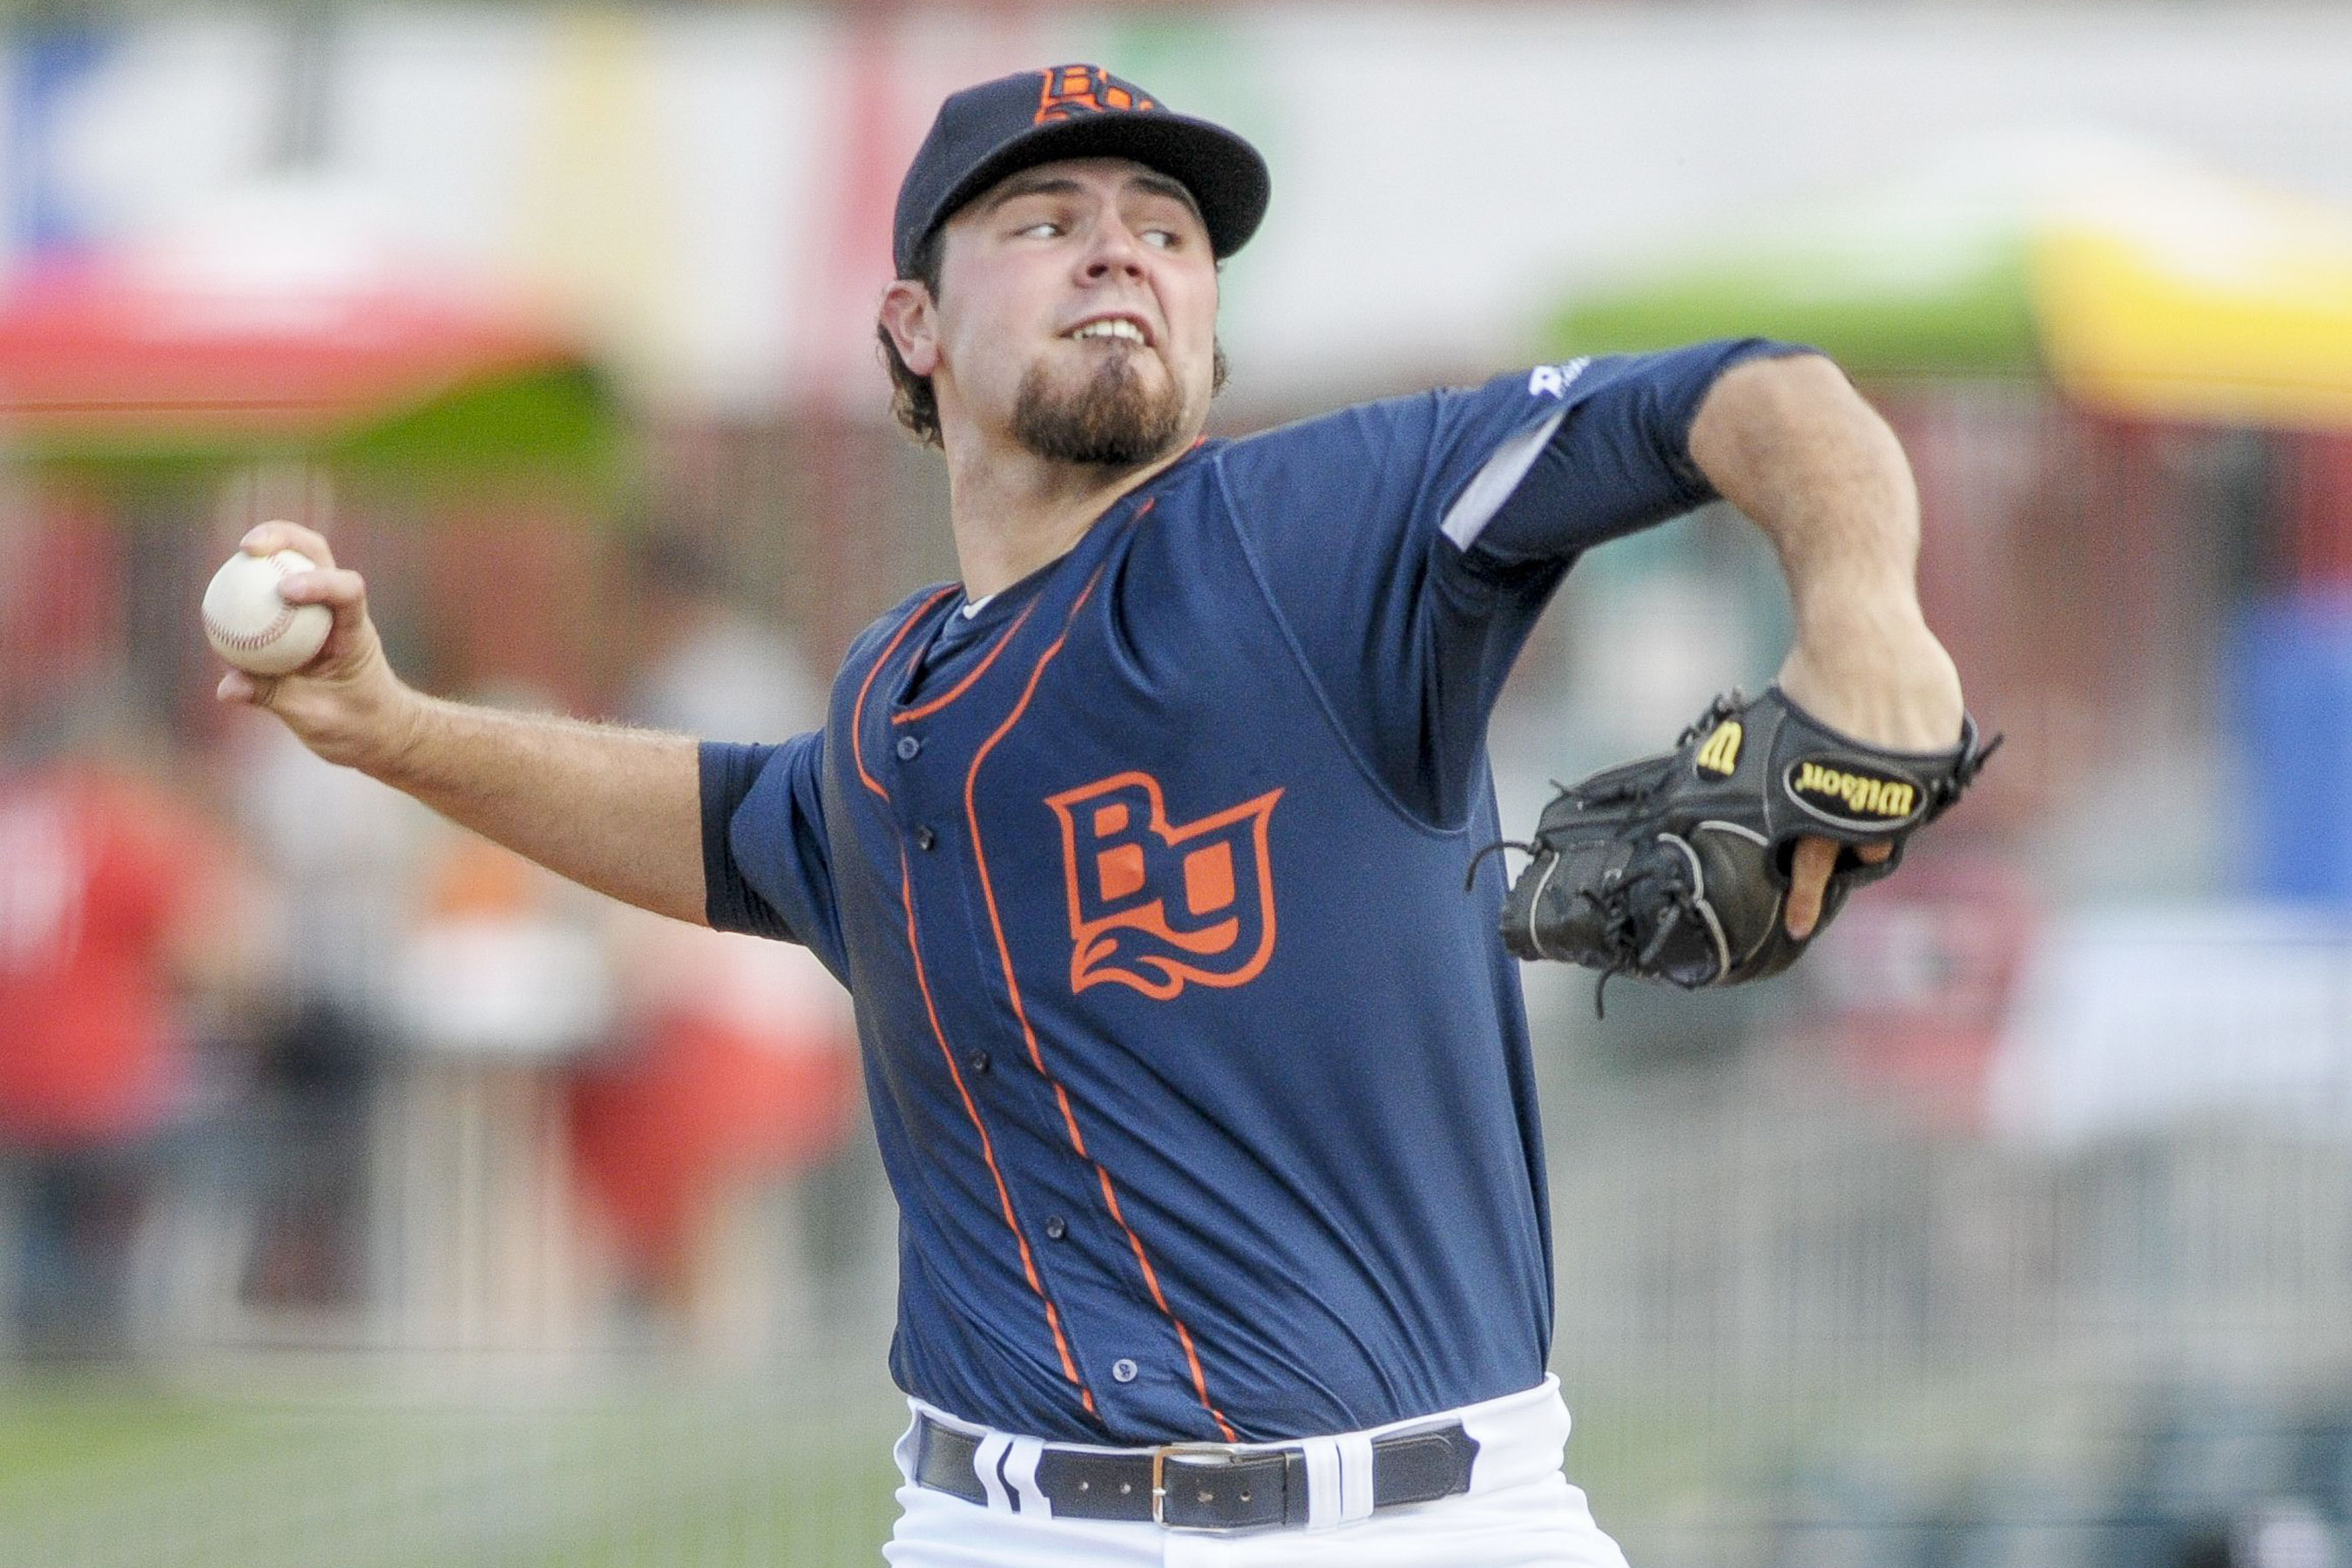 Tampa Bay Rays Prospect's Wife, Son and Mother-in-Law Are Killed — and Brother-in-Law Is Arrested